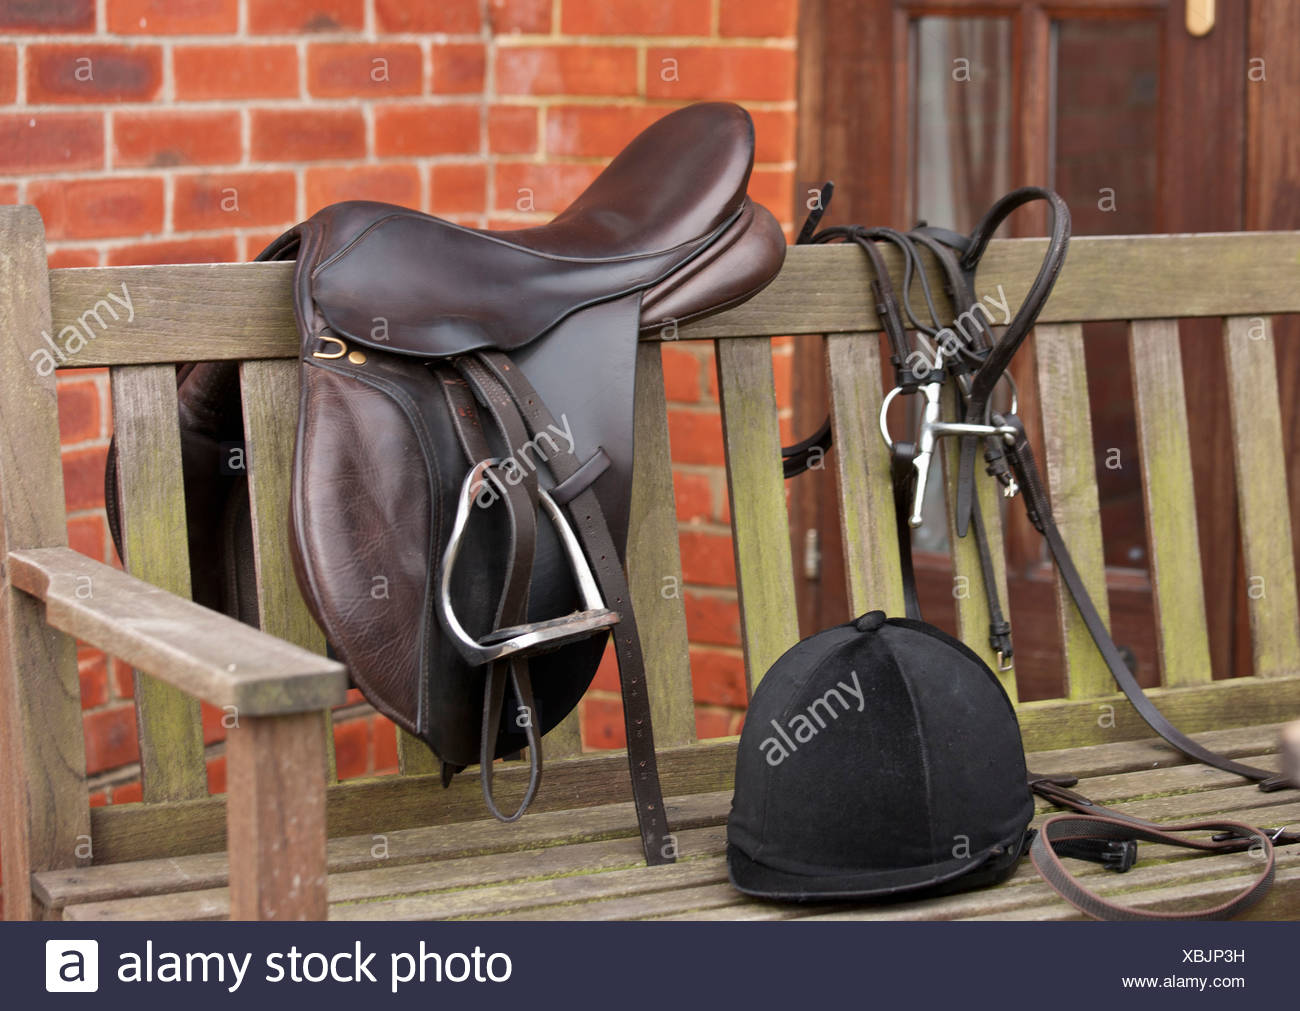 Horse saddle, reins and helmet on bench - Stock Image